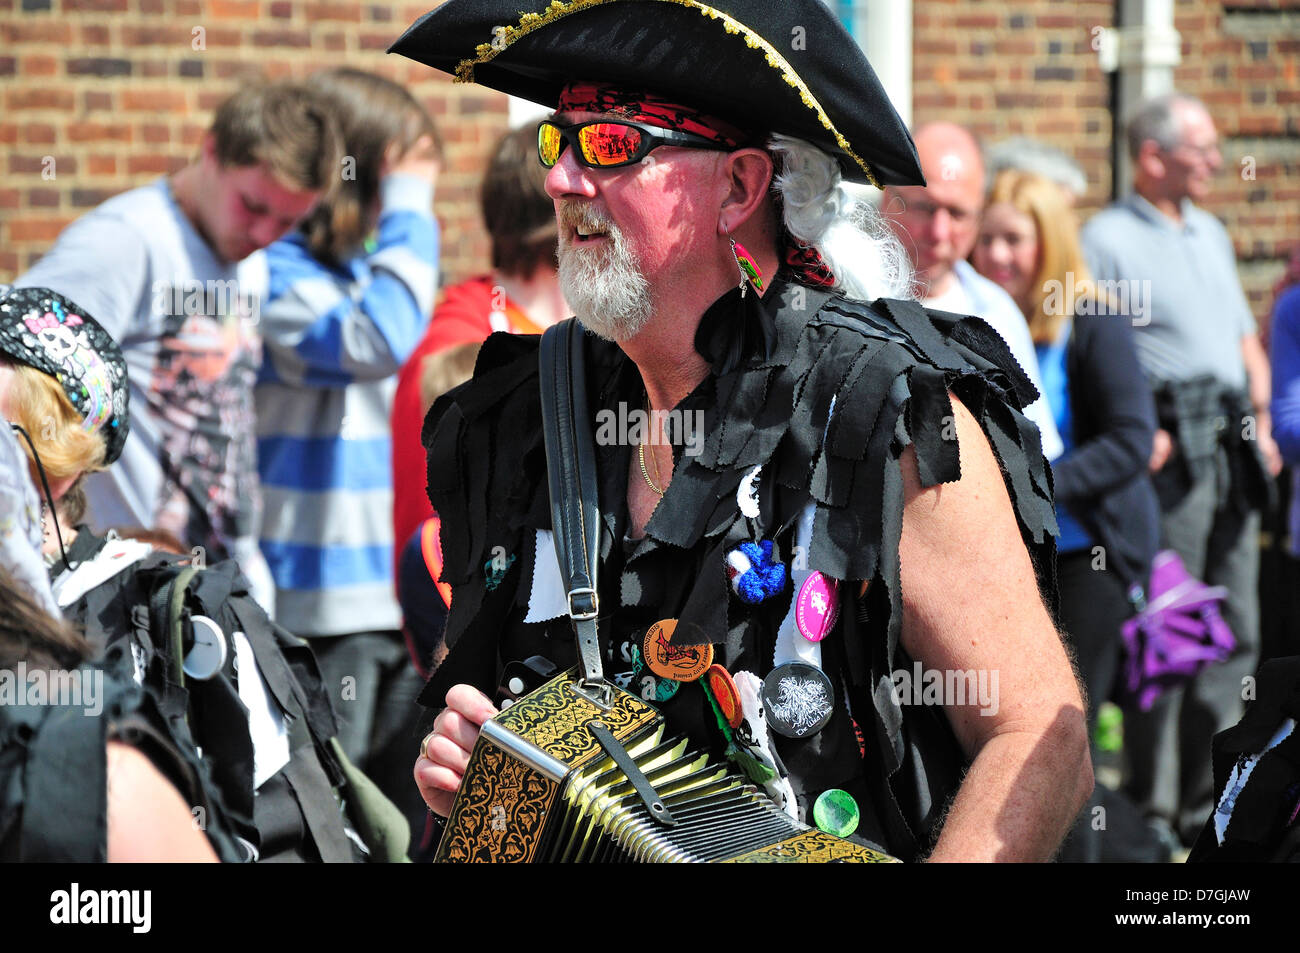 Music Pirate Stock Photos & Music Pirate Stock Images - Alamy